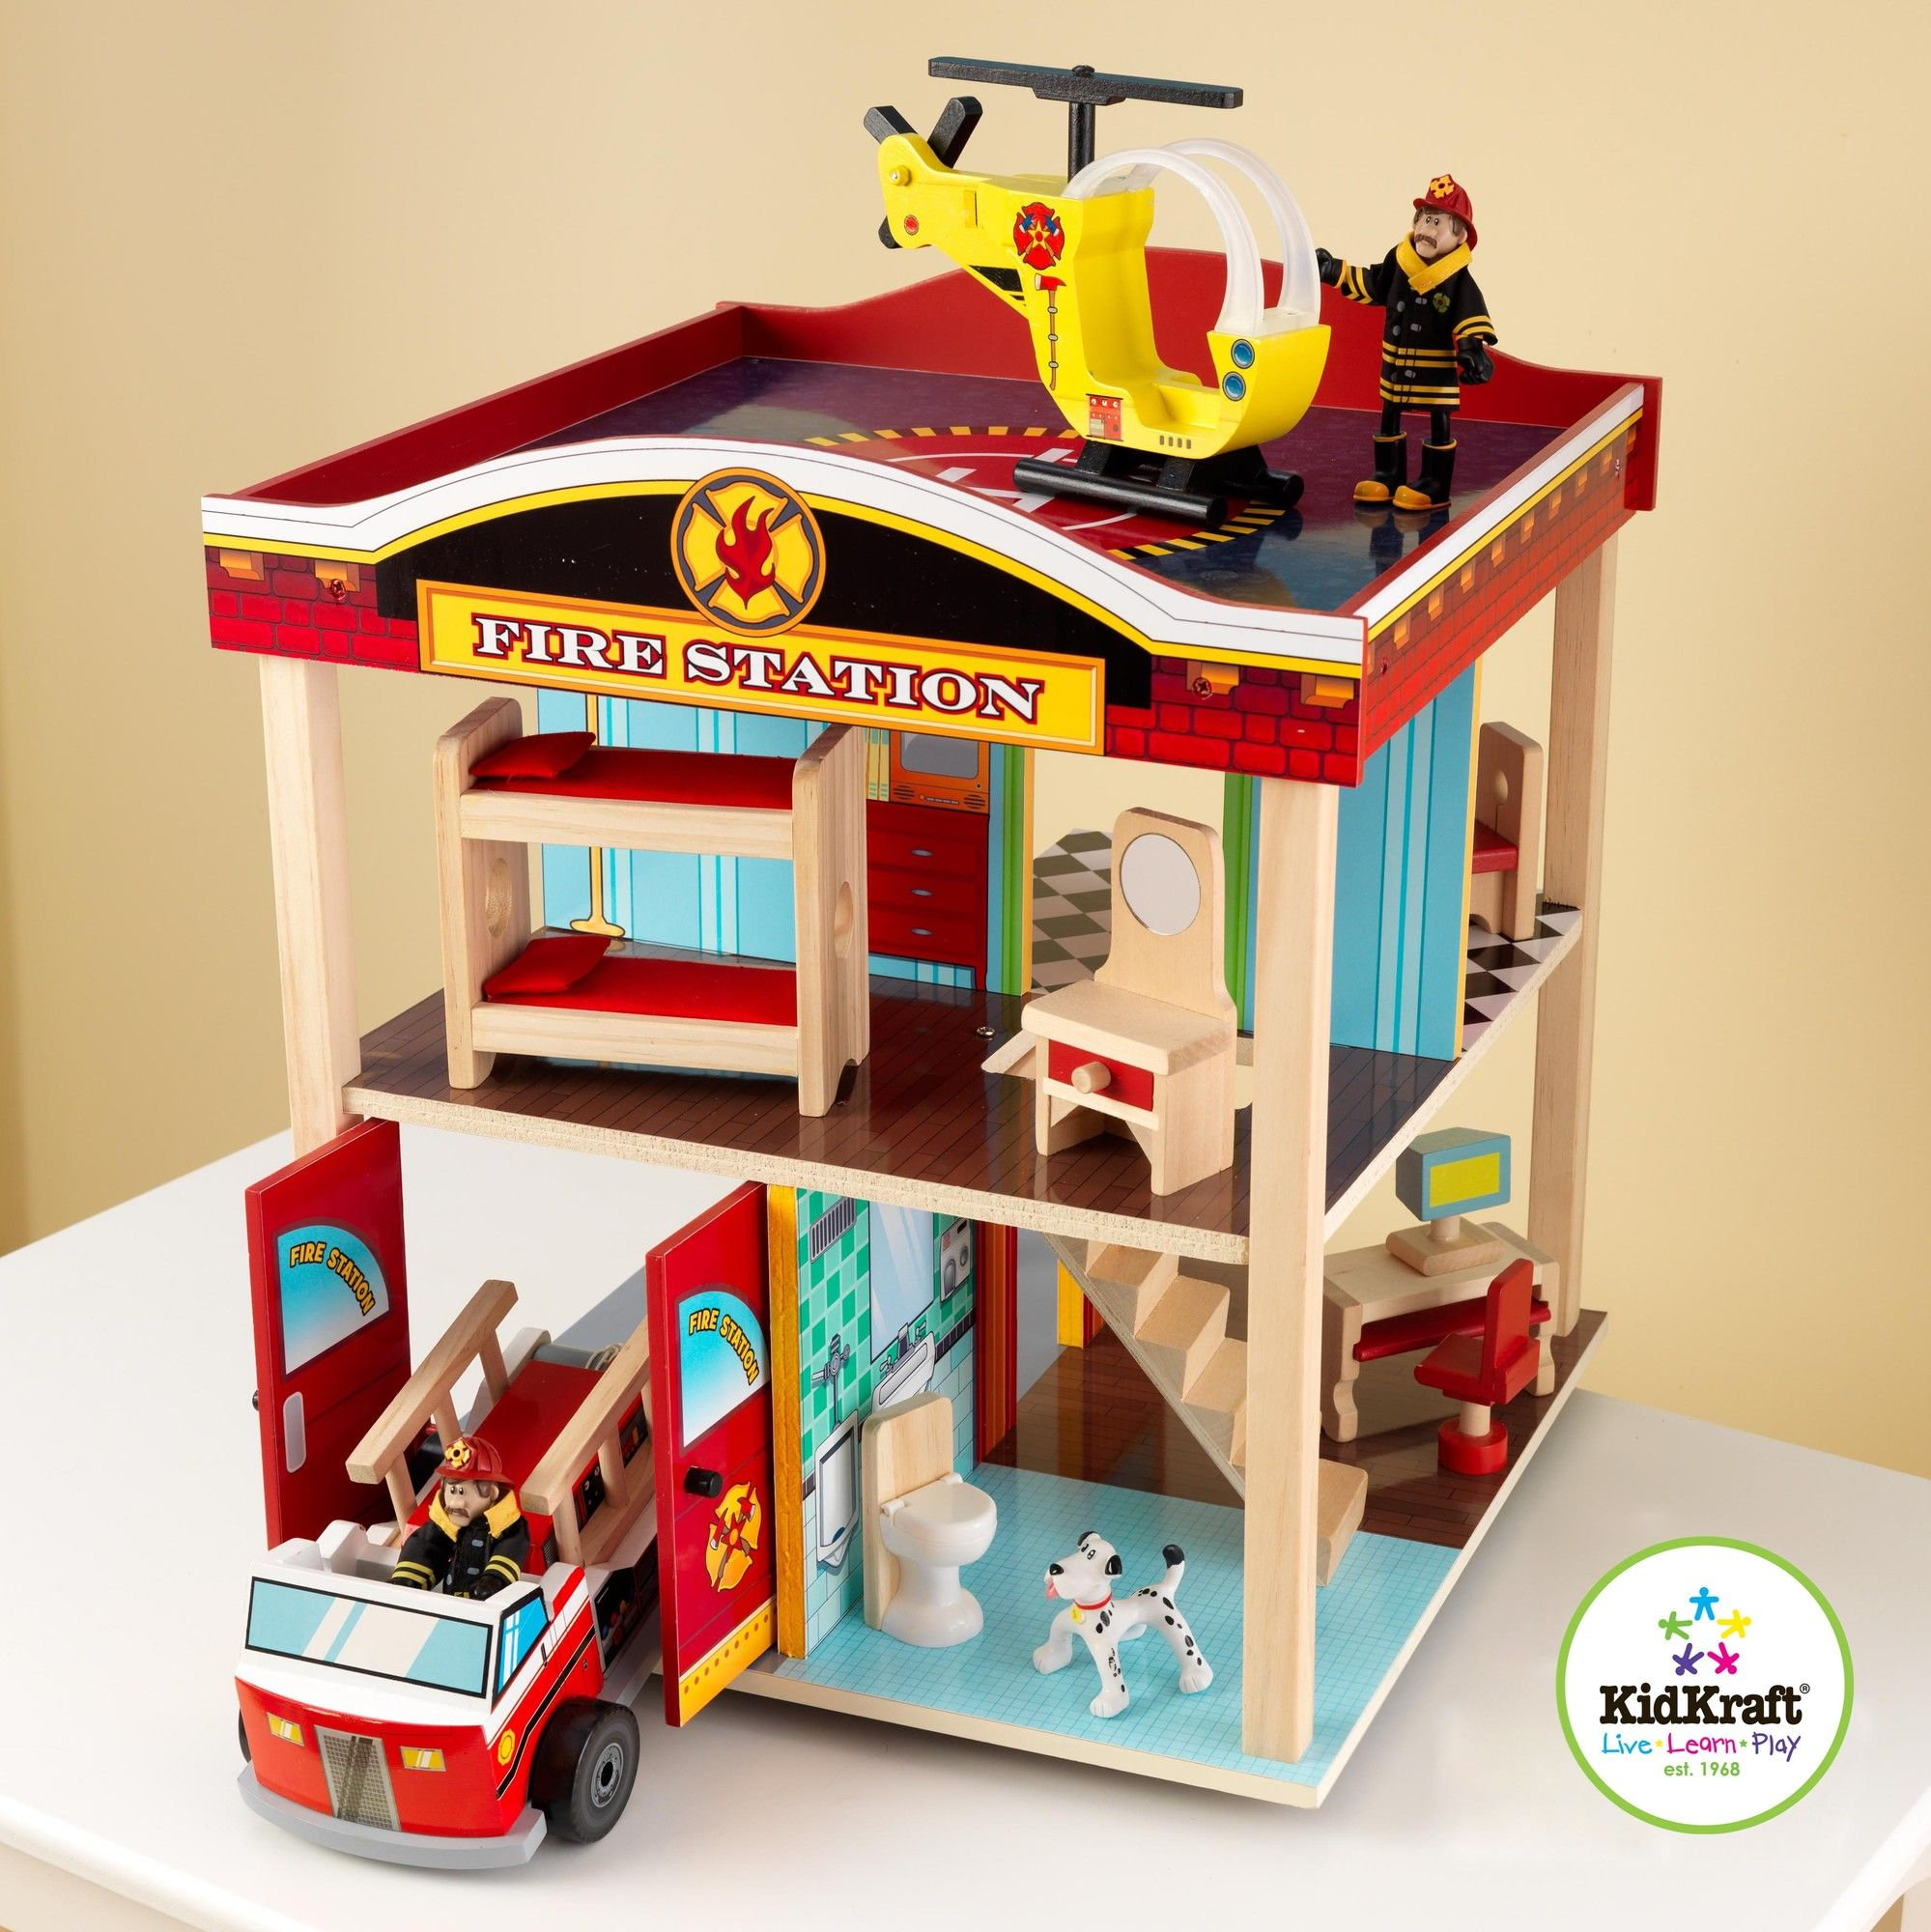 Made Of Wood, The Kidkraft Fire Station Set Comes With